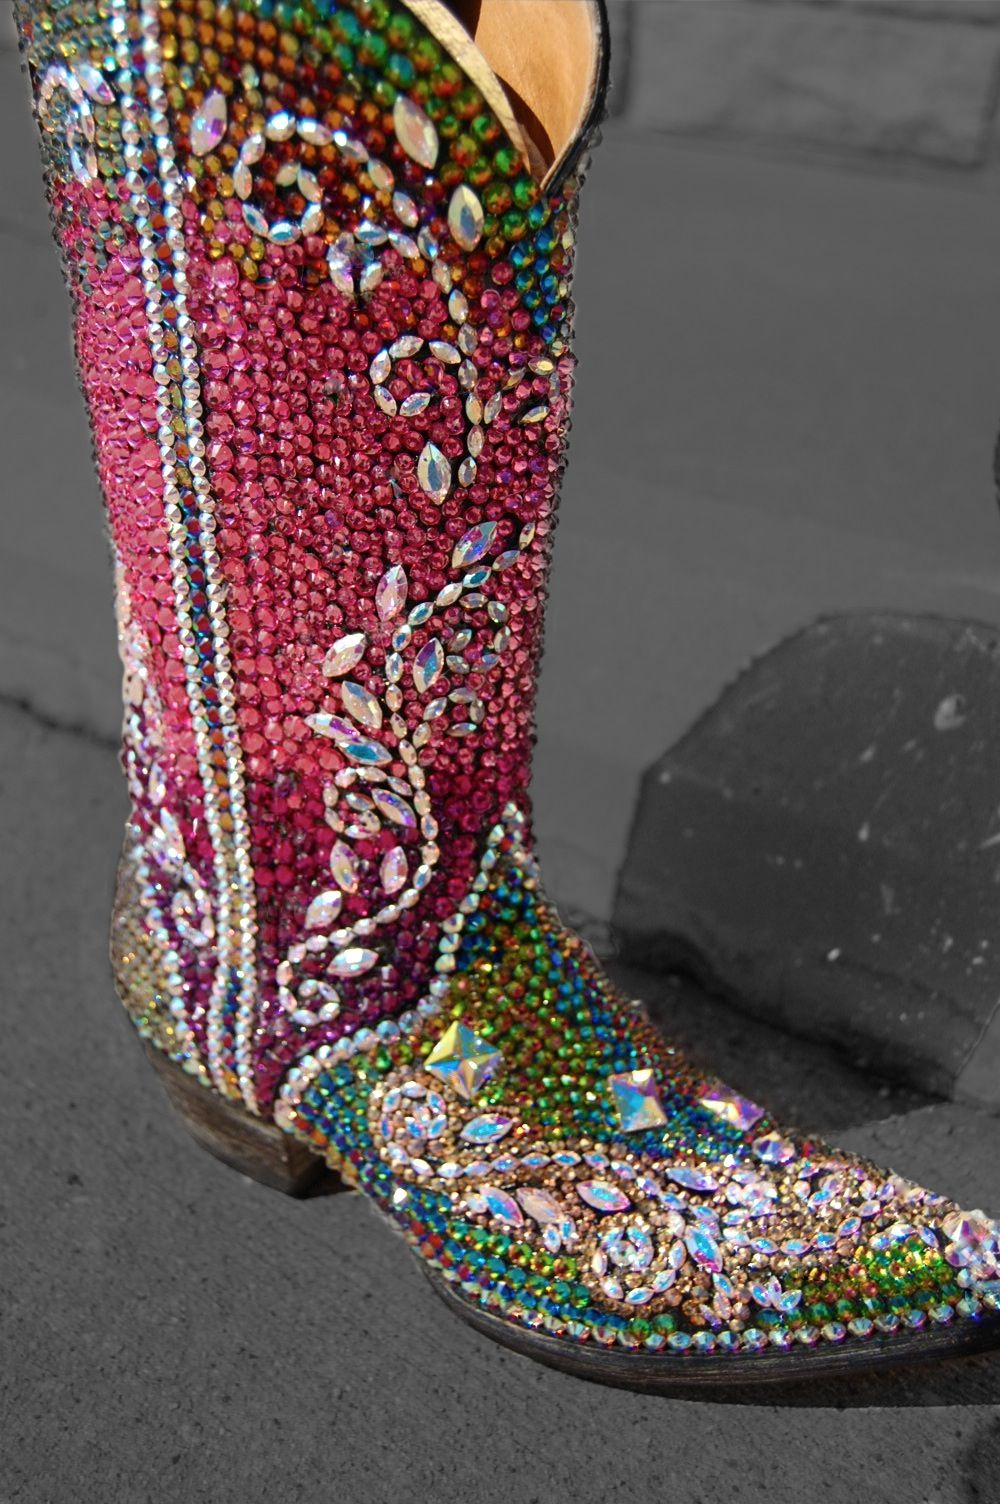 WHAM! BAM! GLITZ AND GLAM! BY JACQI BLING STYLE- Calling all boot vixens, it's time to step up your Glitz Game! Venture into the Va Va Voom territory with these ready-to-bling boots. Certified over-the-top they throw sparkle like nothing else around. Flaunting an insane amount of crystals in pink, purple, teal, gold and AB, they surpass all the rules of glam!